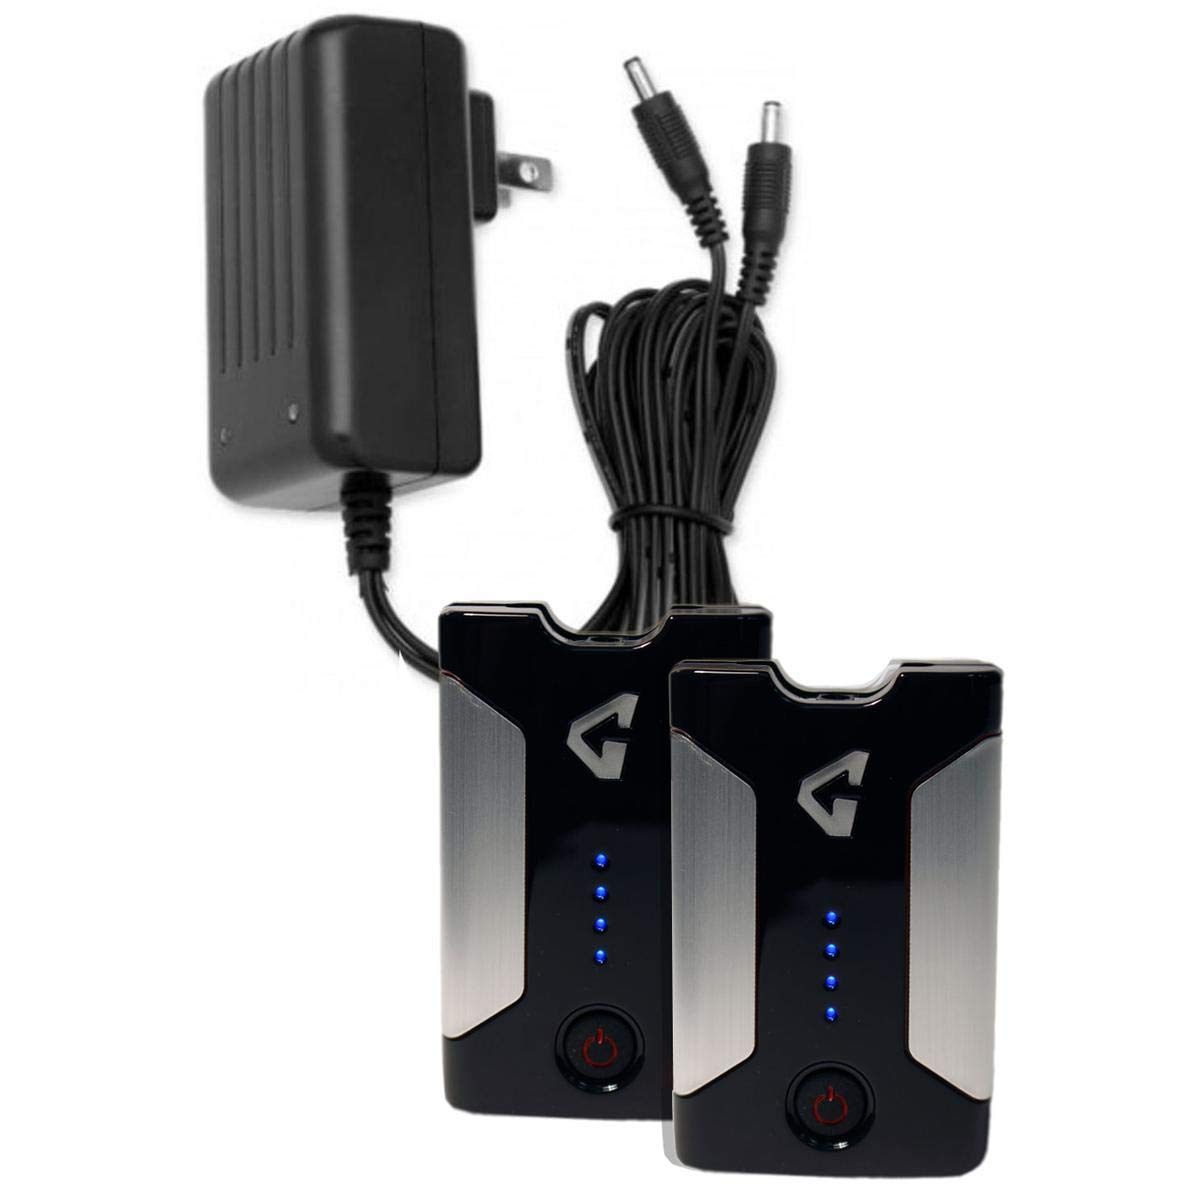 Gerbing Gyde 7V Battery and Dual Charger 3pc Kit by Gerbing